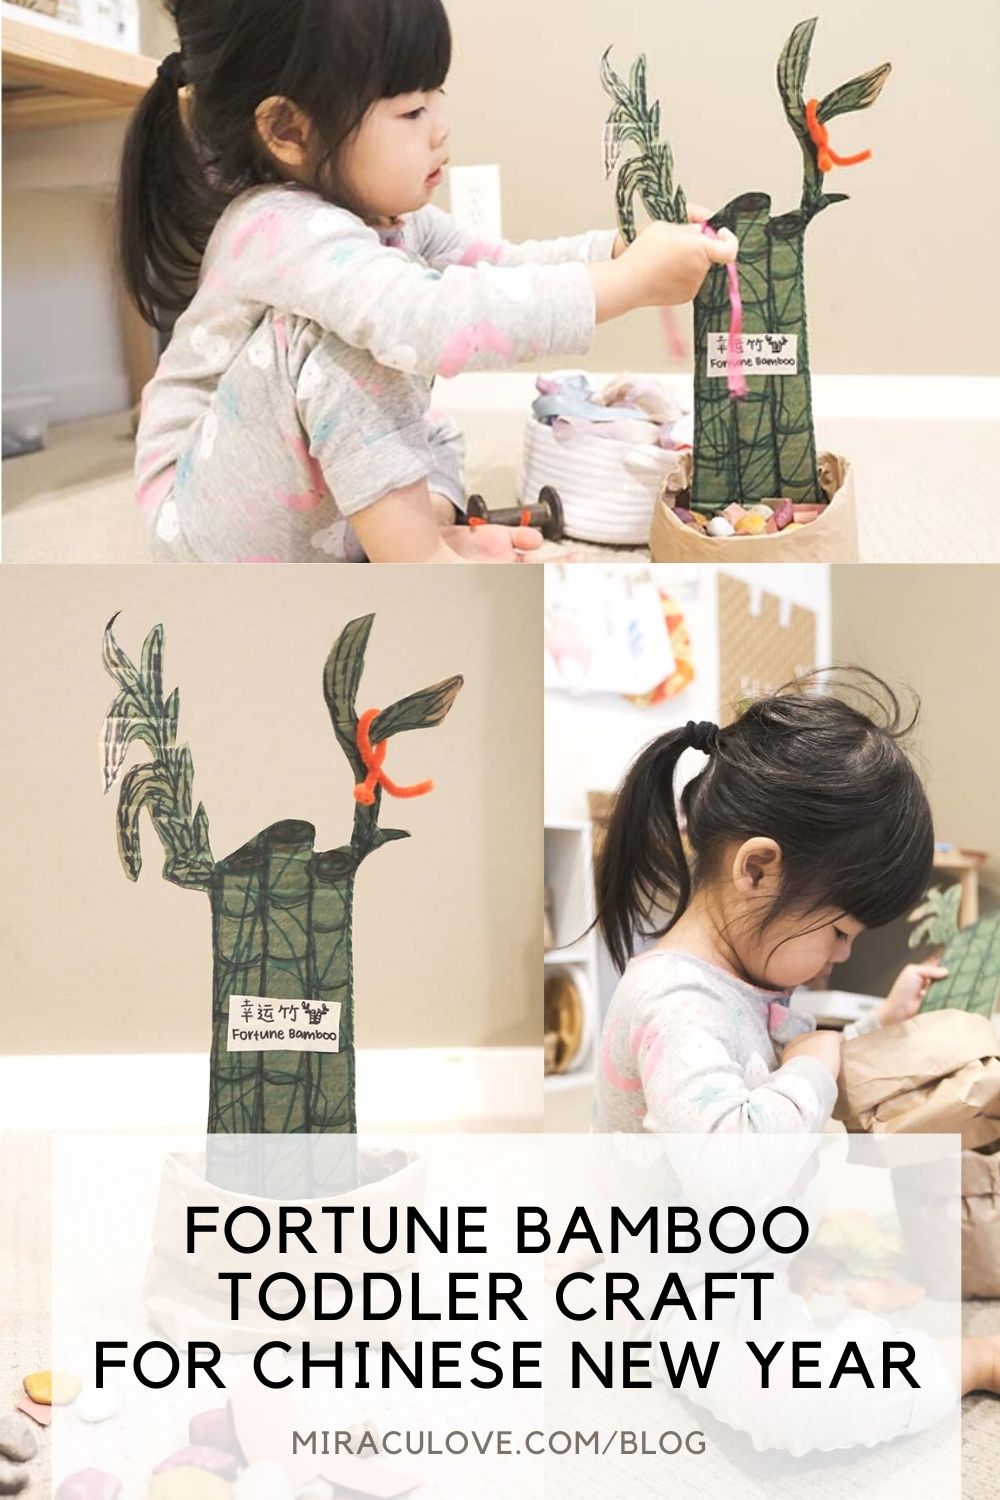 Fortune Bamboo Toddler Craft for Chinese New Year